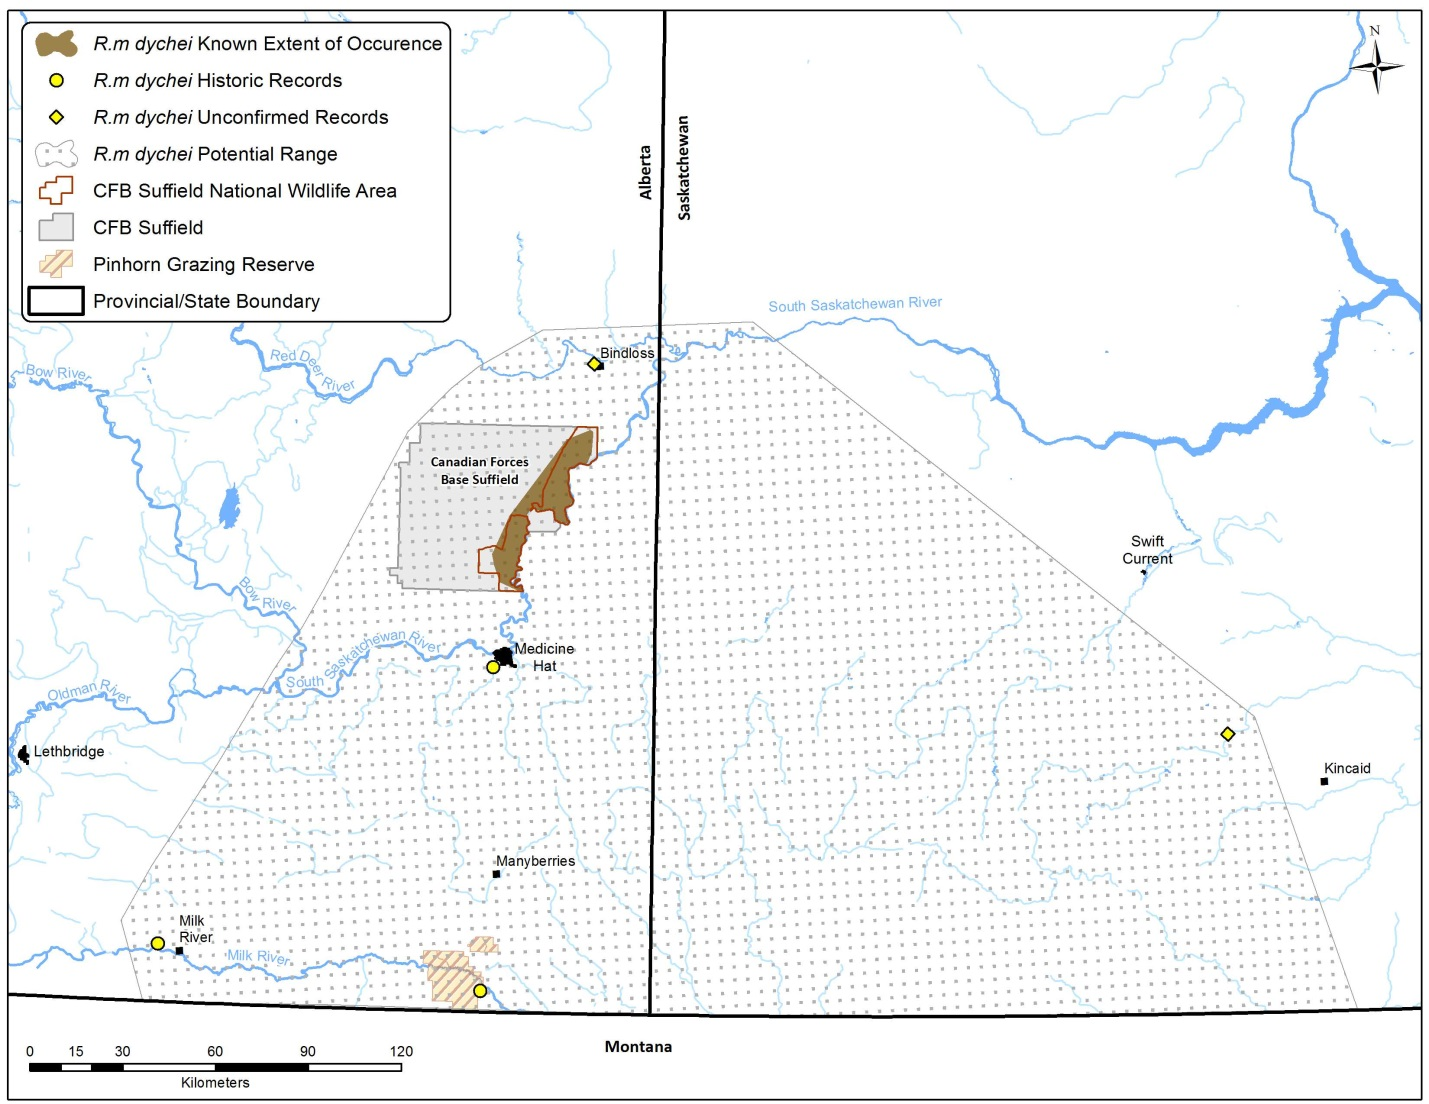 map: Sites in Alberta found along the South Saskatchewan River near the Canadian Forces Base Suffield.